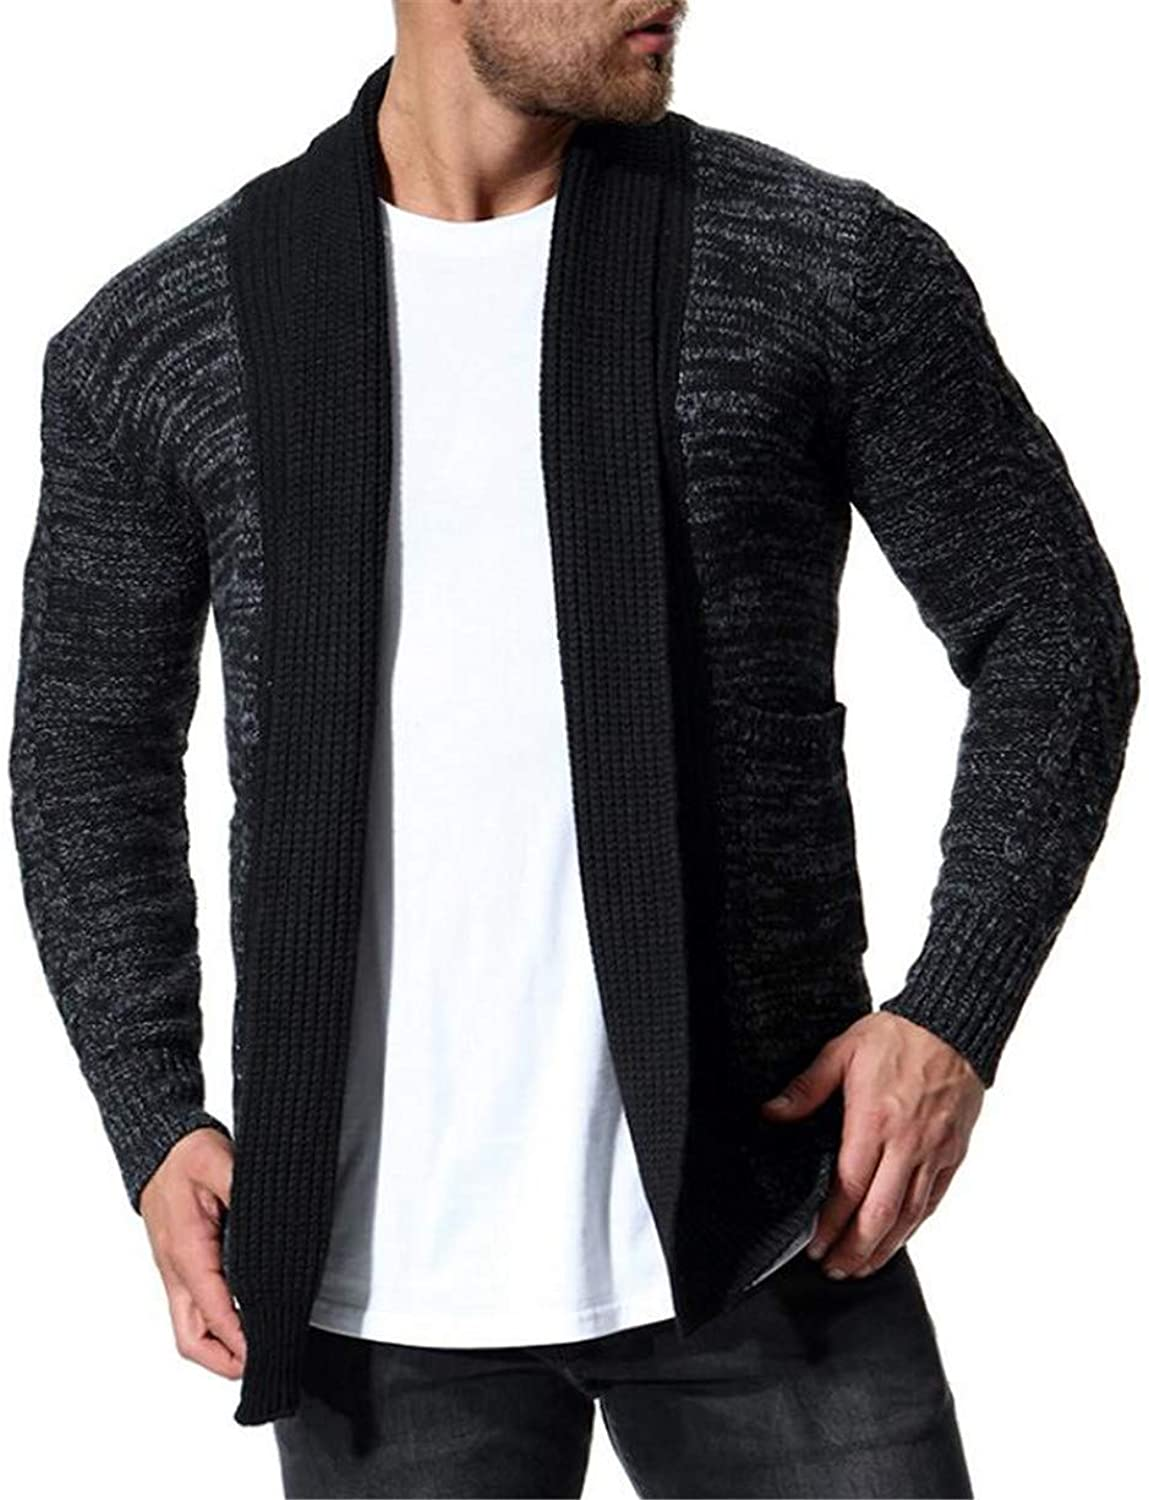 SELX SELX SELX Men Shawl Collar Contrast color Long Sleeve Knit Cardigan Coat aeb9d4